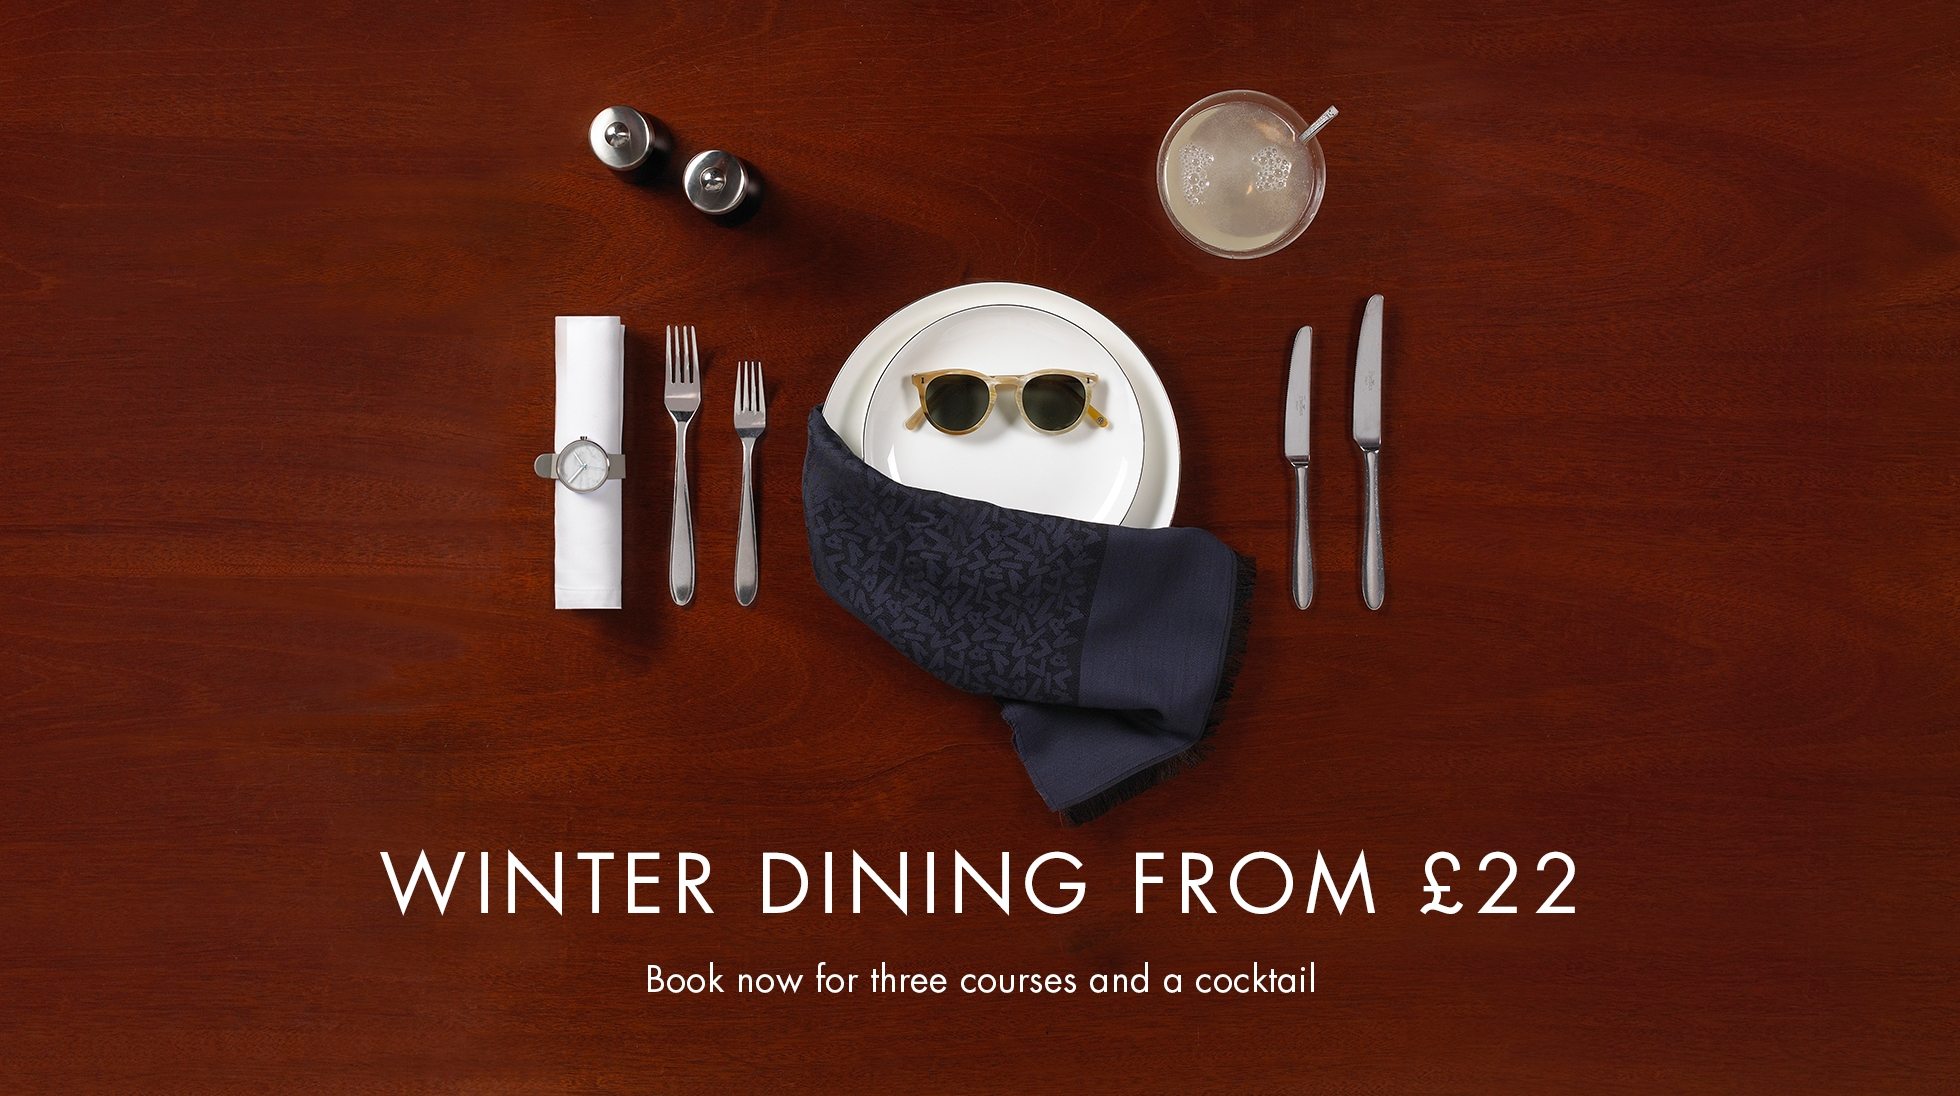 Winter Dining from £22